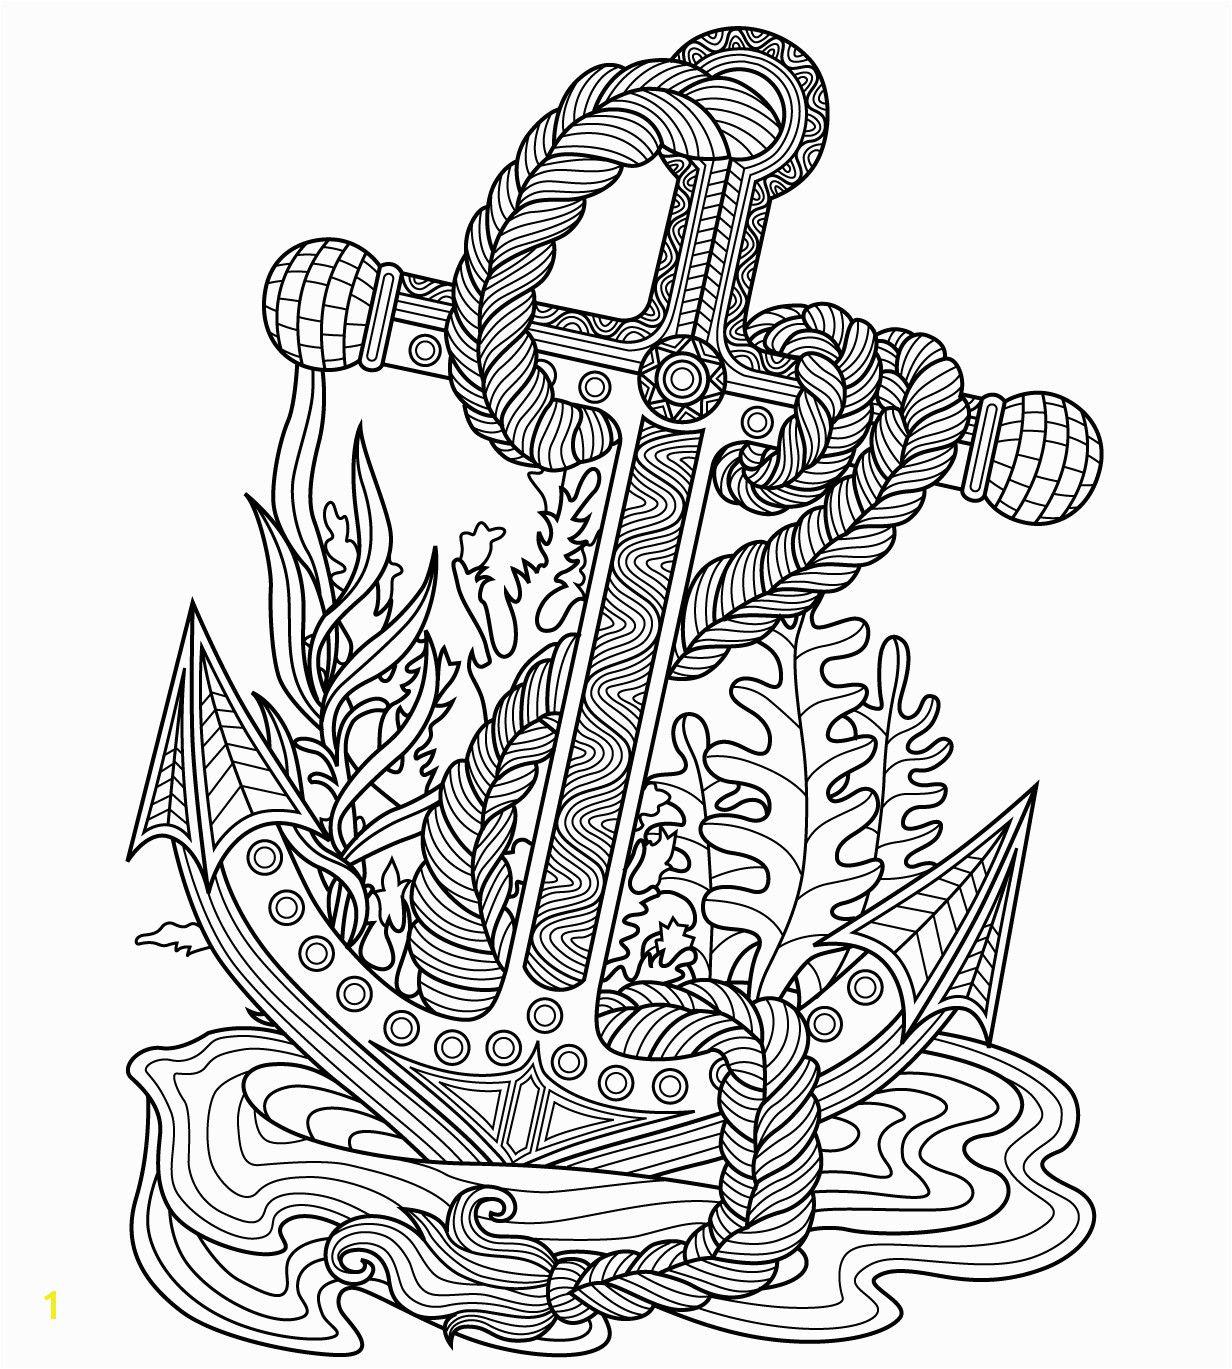 Anchor Sea coloring page